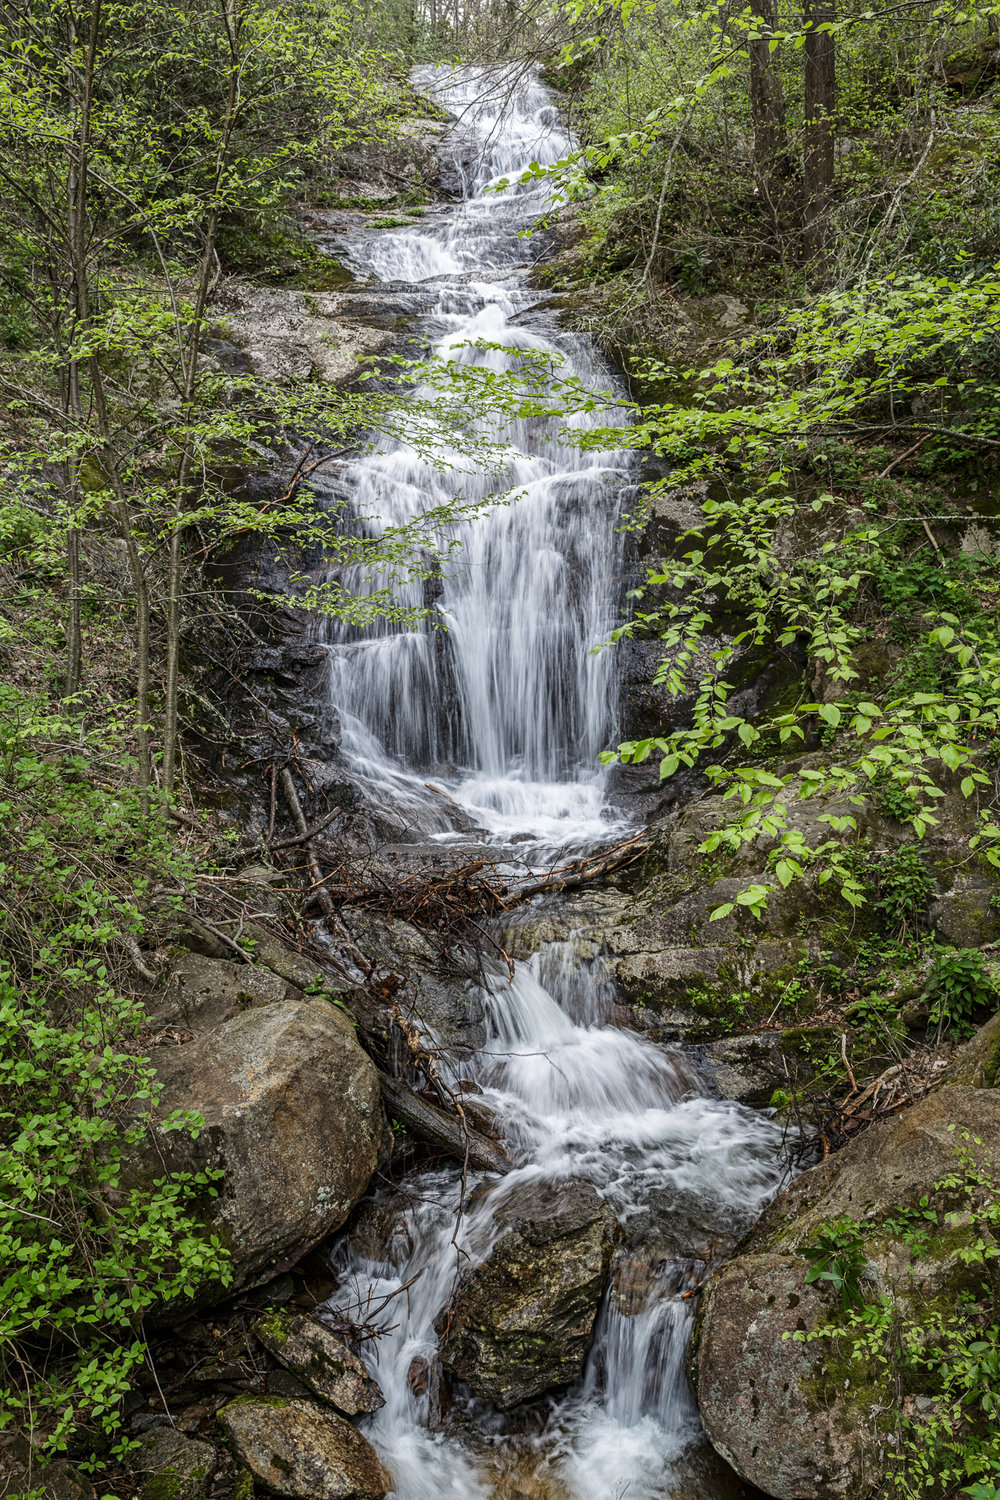 walker-falls-in-the-pisgah-national-forest-Kathleen-Kathy-Roberts-Asheville-NC-Photographer-4.jpg